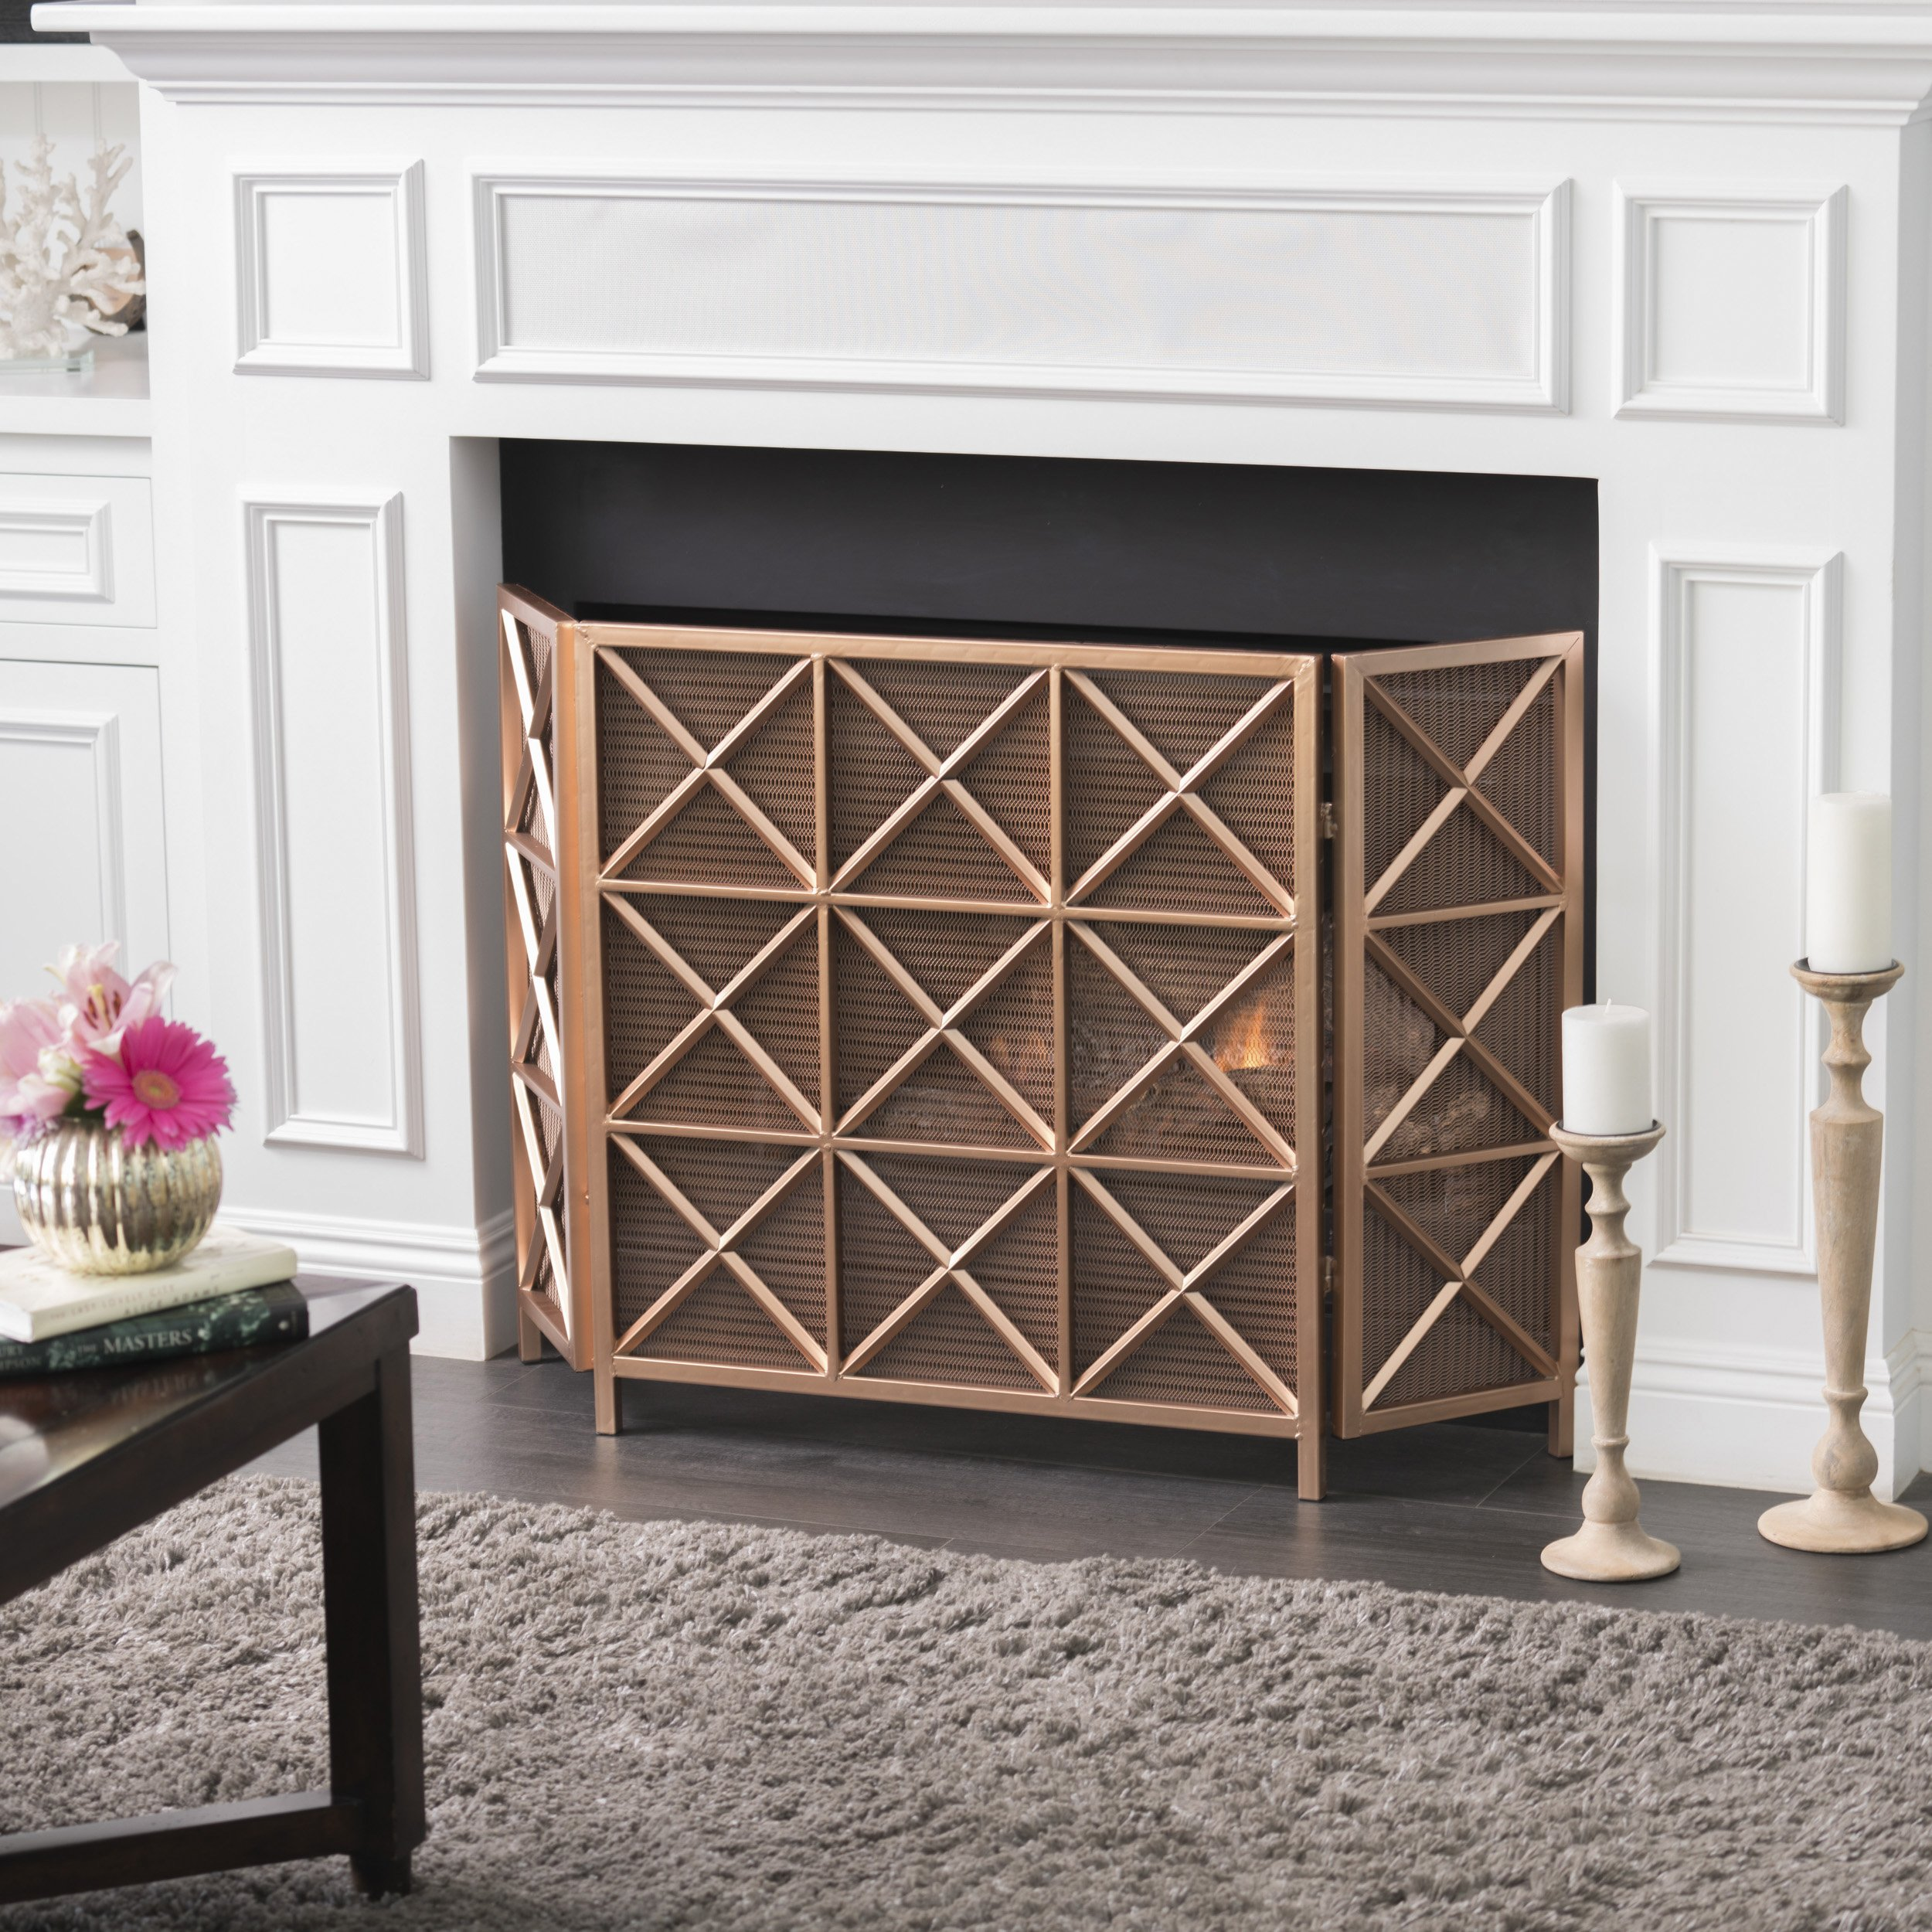 mandralla 3 paneled iron fireplace screen fireplace screens